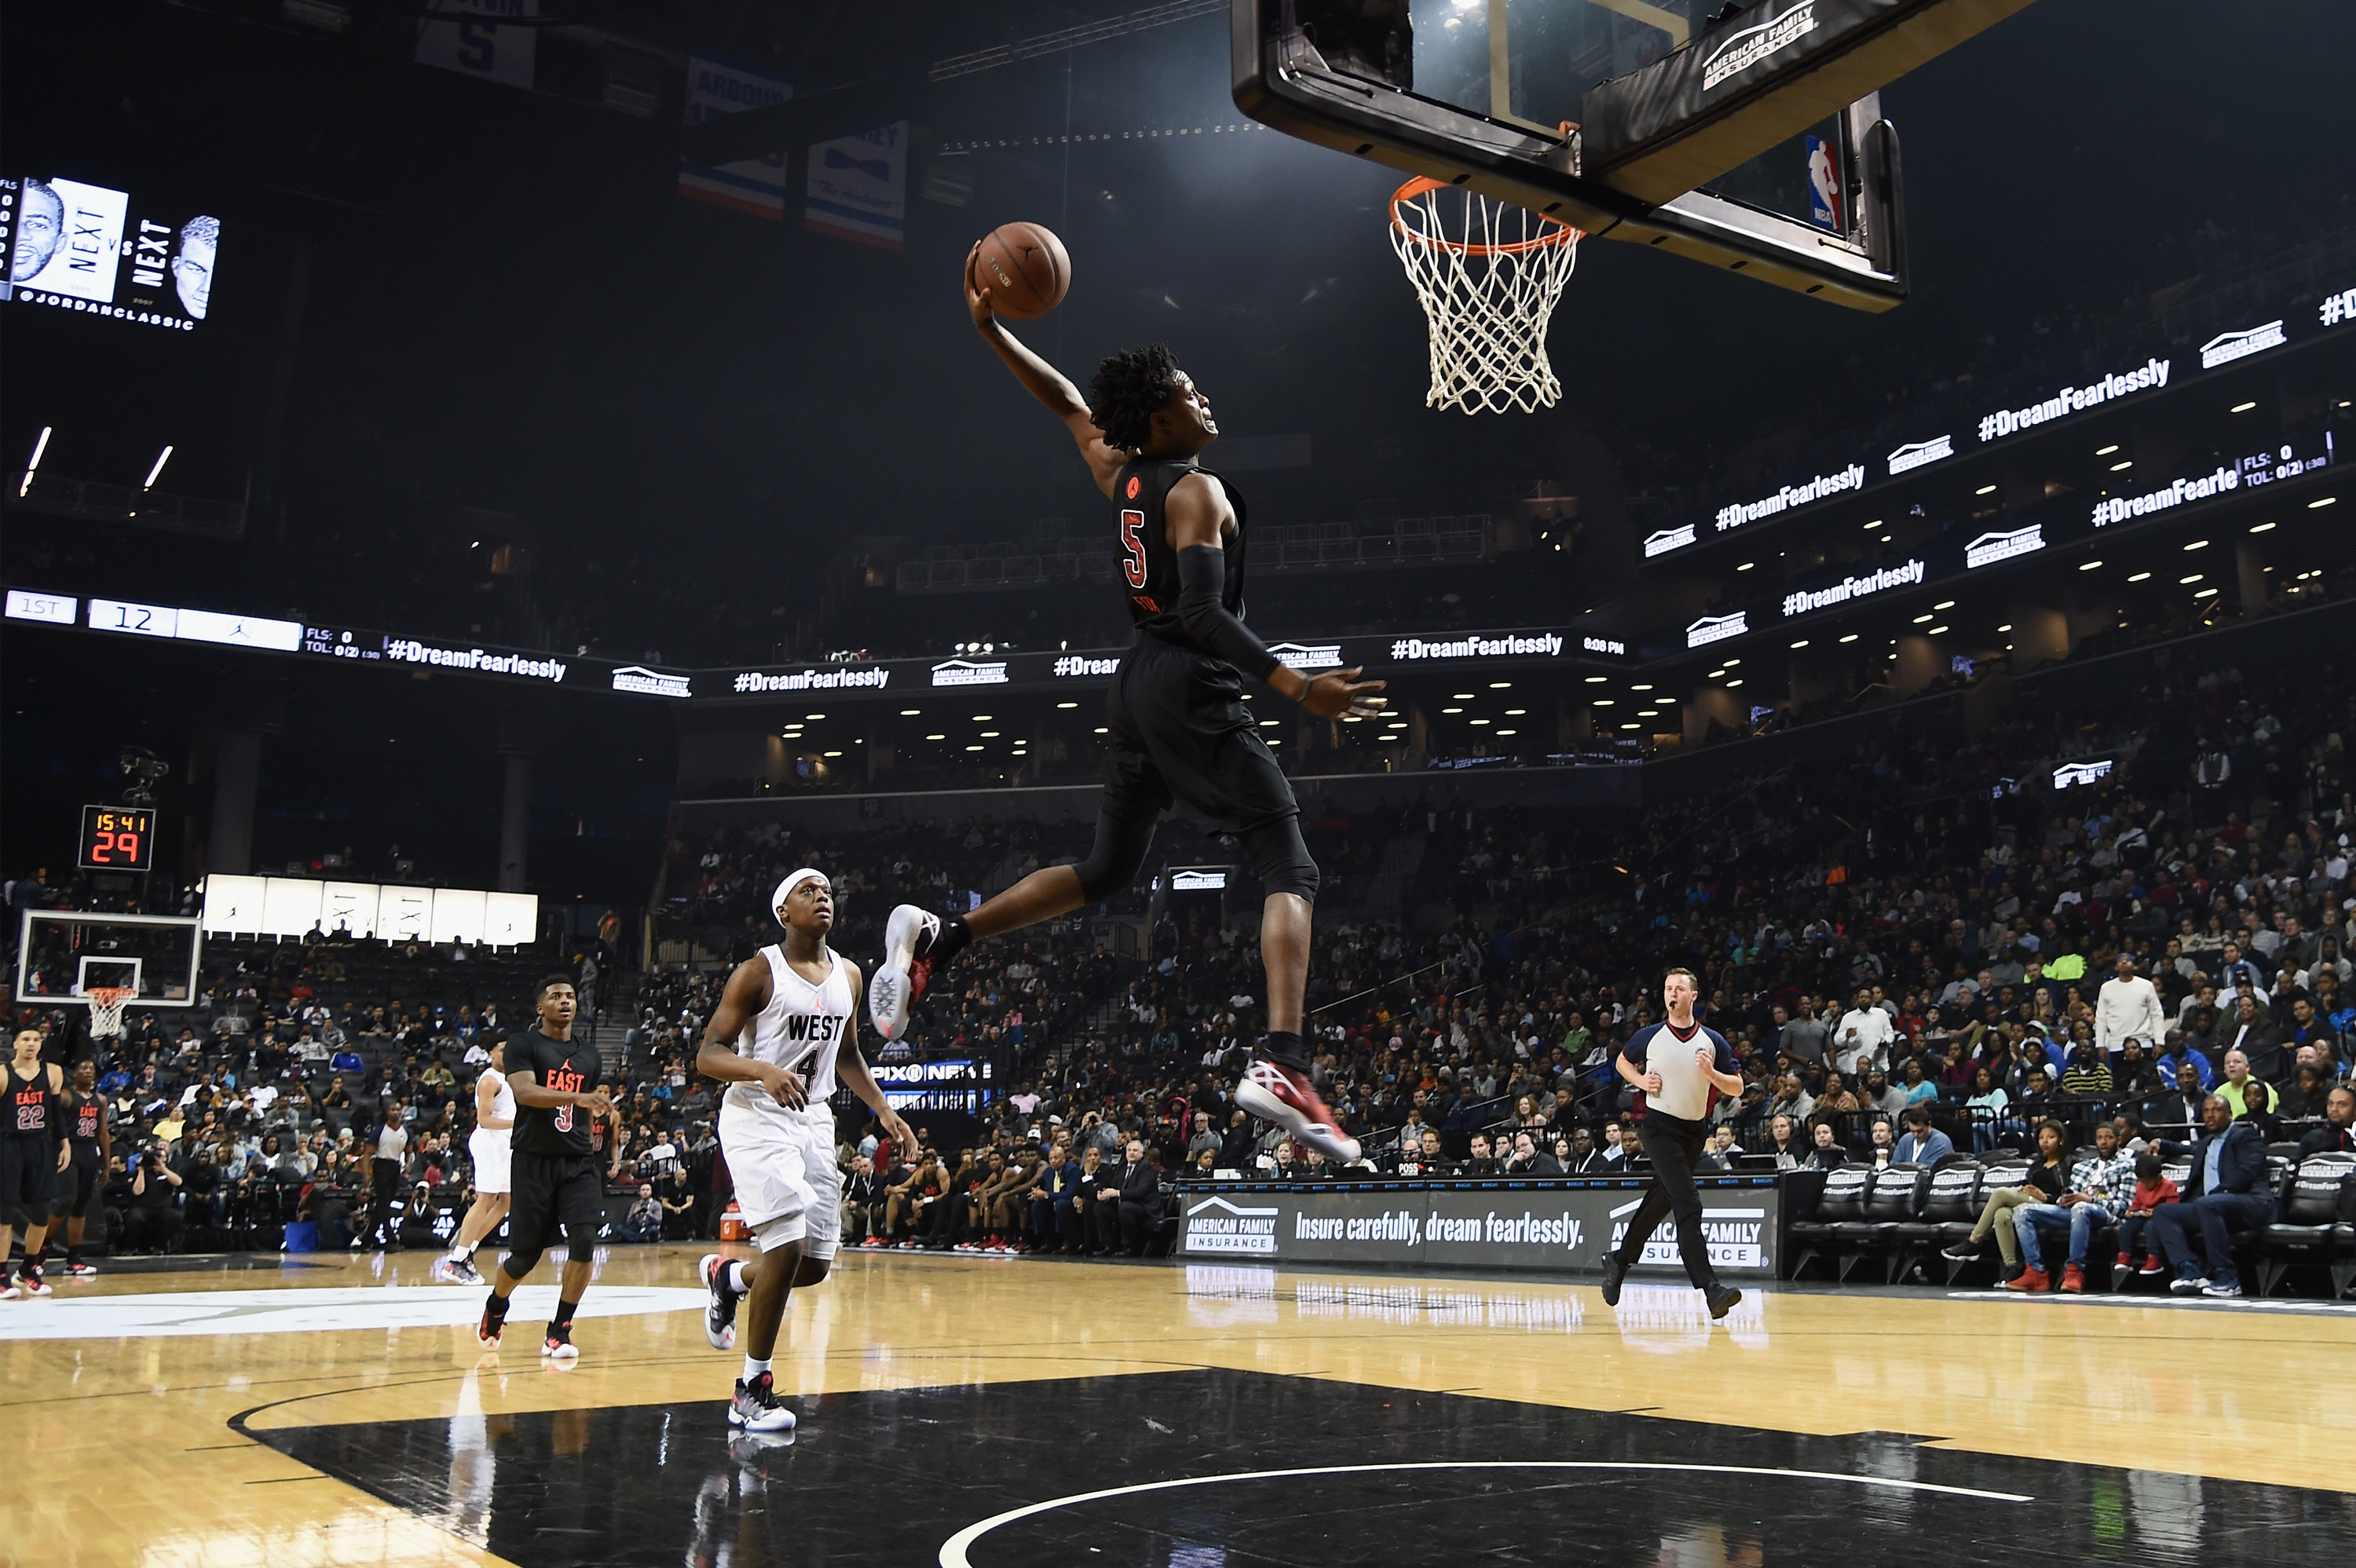 NEW YORK, NY - APRIL 15: East Team MVP De'Aaron Fox (Katy, TX) in action during the 15th iteration of the Jordan Brand Classic at Barclays Center on April 15, 2016 in New York City. (Photo by Dave Kotinsky/Getty Images for Jordan Brand )